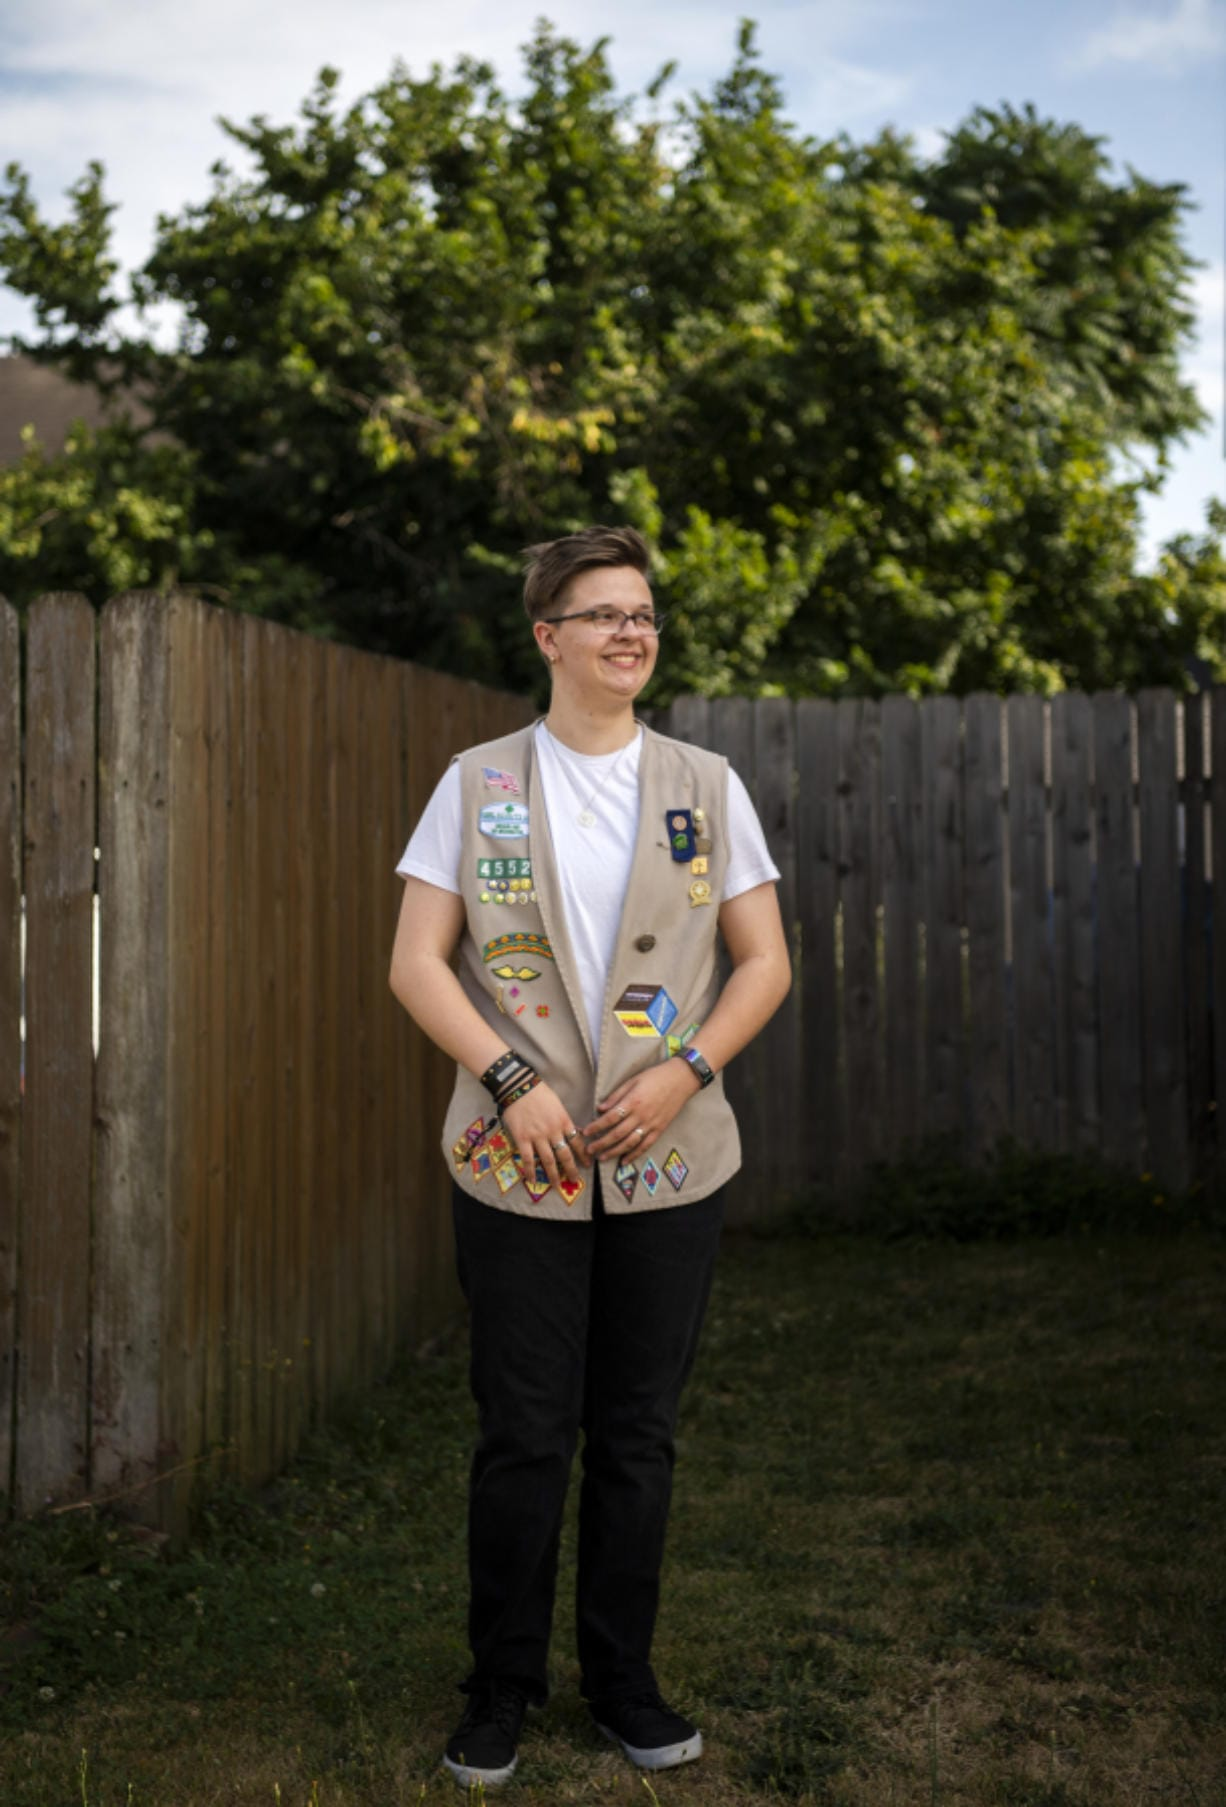 Casey Ellson, 16, grew up in Girl Scouts and continued participating after coming out as transgender and beginning a medical transition.